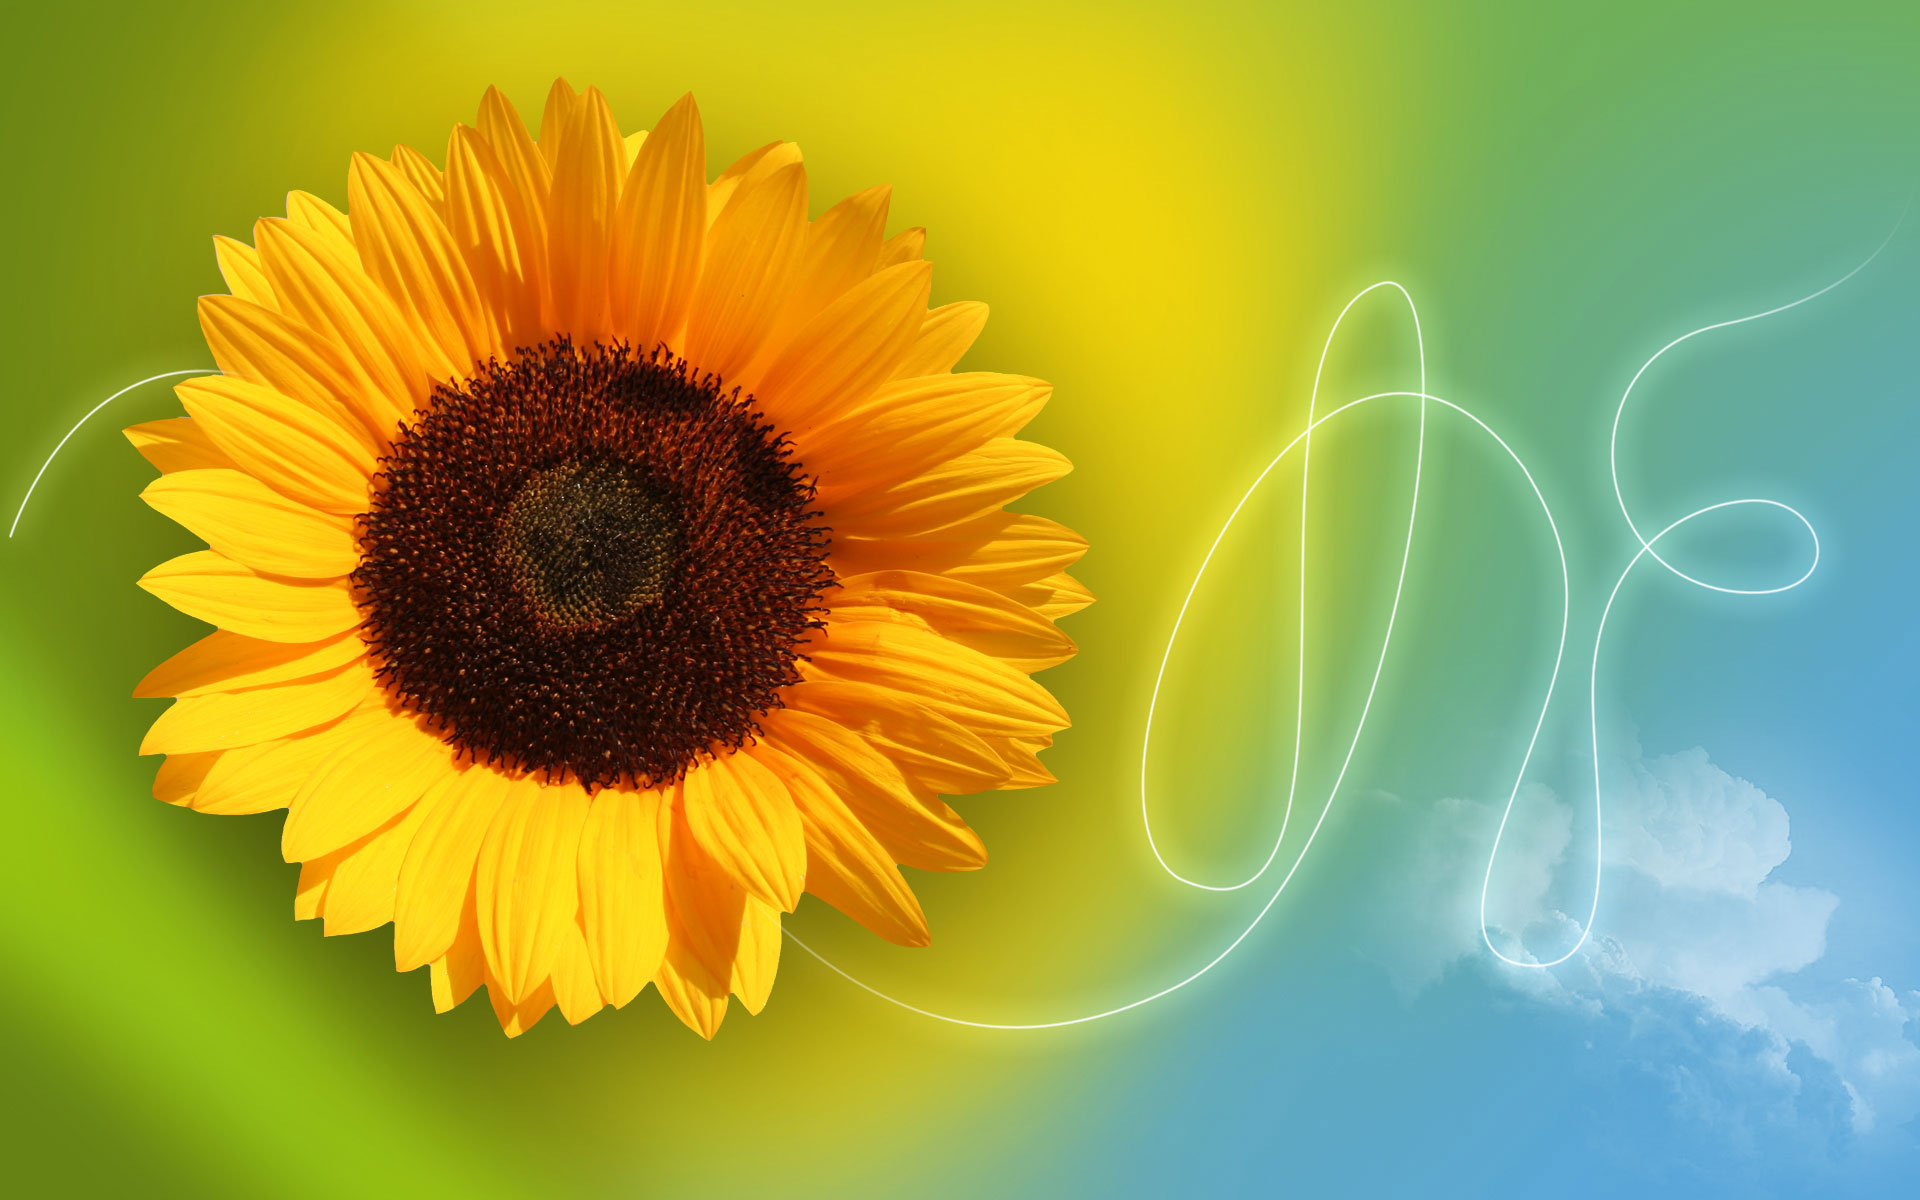 1280x863px Astounding Sunflower Background | #495616